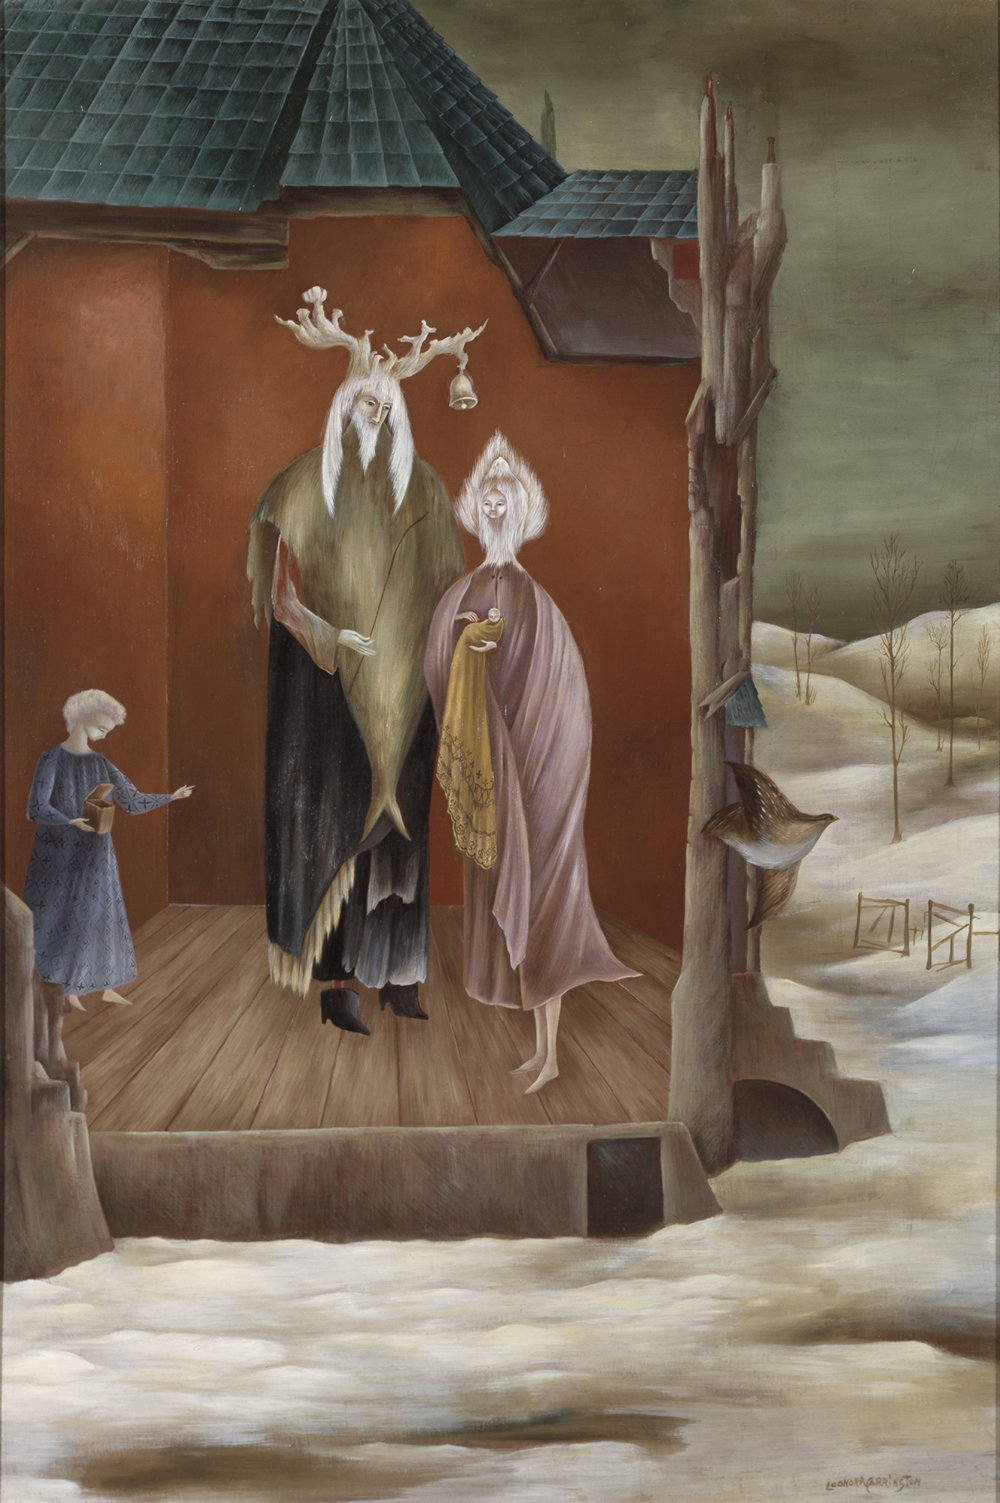 Leonora Carrington,  Le Bon Roi Dagobert , 1948, Oil on canvas, 35 3/8 x 23 5/8 inches (90 x 60 cm)